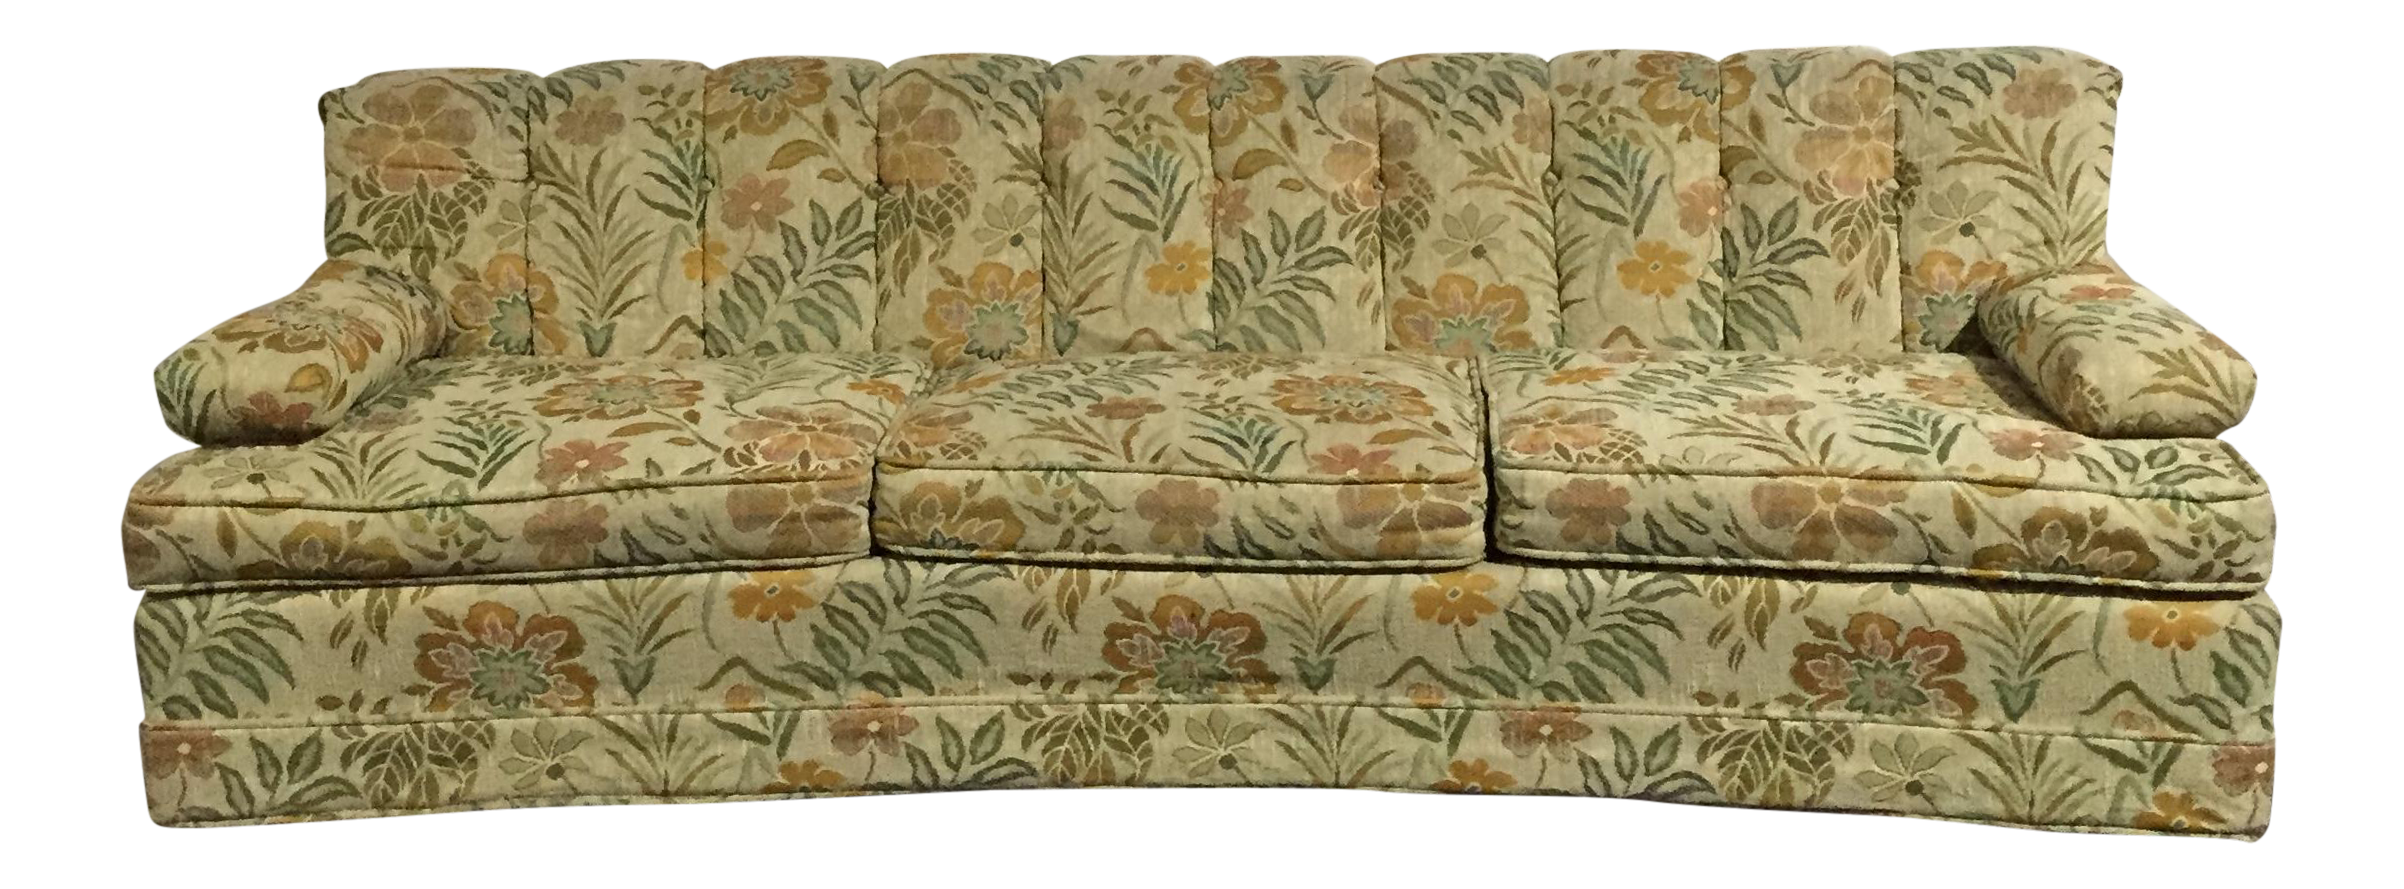 Fantastic Vintage 60S Retro Floral Sofa Onthecornerstone Fun Painted Chair Ideas Images Onthecornerstoneorg